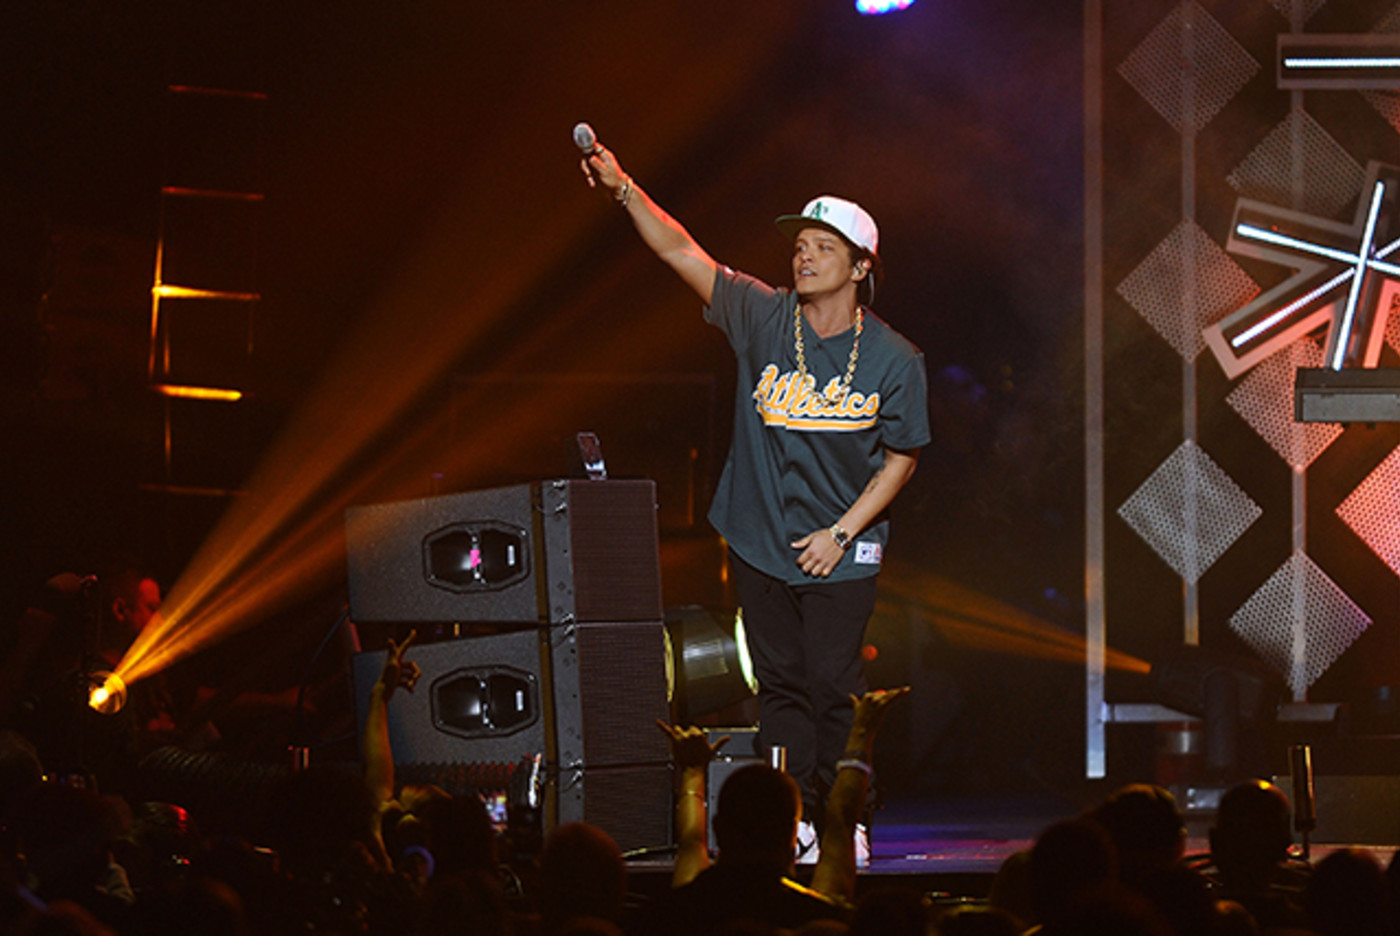 Bruno Mars at 102.7 KIIS FM's Jingle Ball 2016